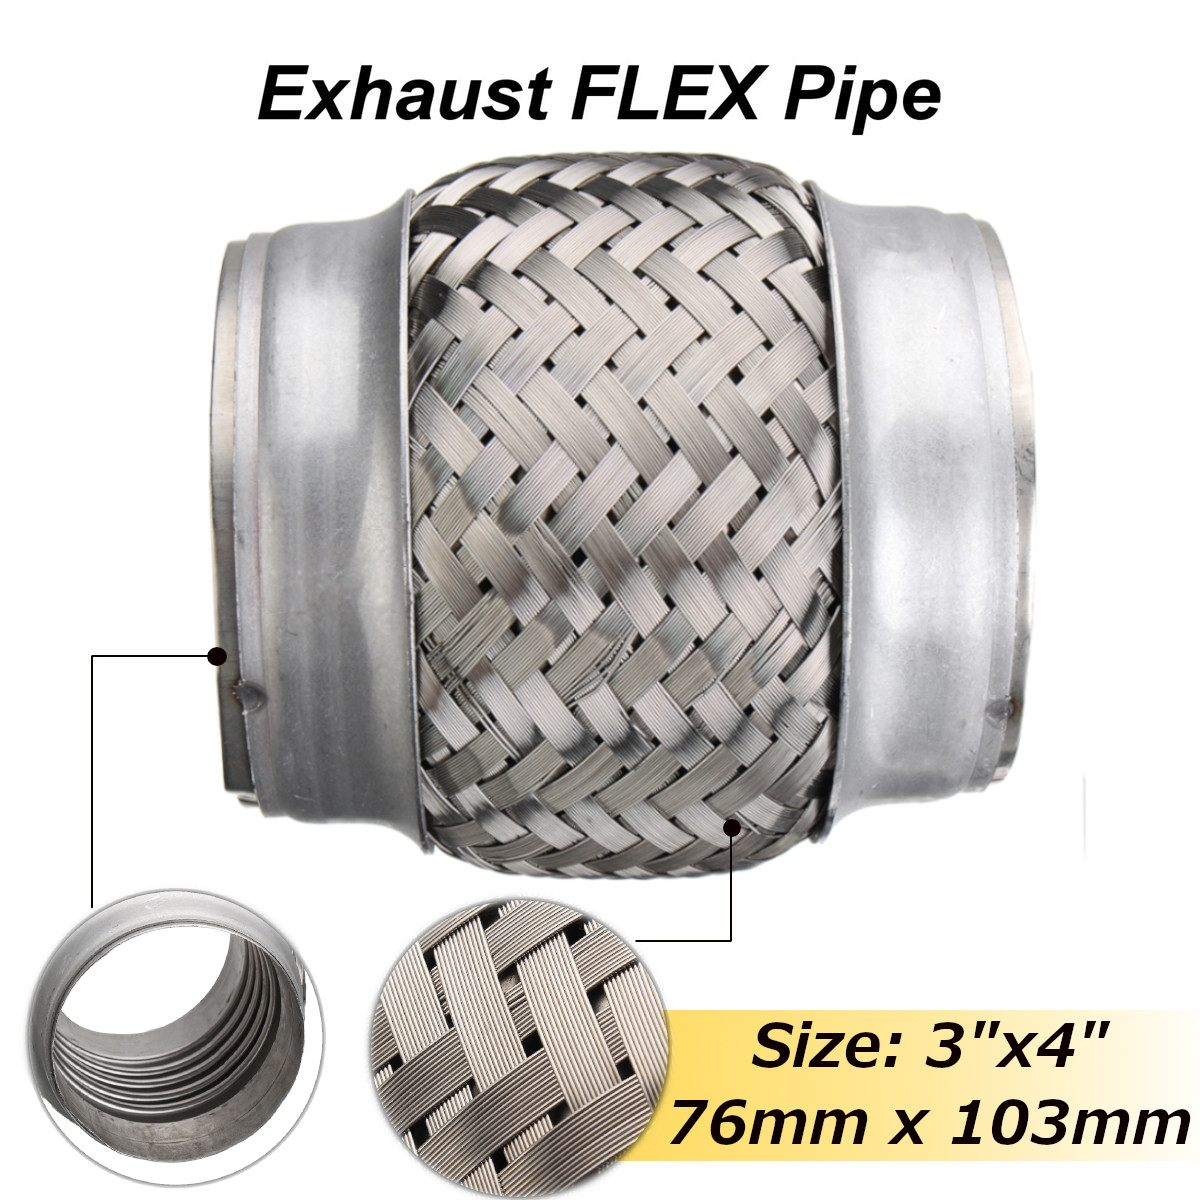 auto parts and vehicles 3 5 exhaust flex pipe 3 1 2 x 10 ol heavy duty stainless steel interlock us car truck exhaust pipes tips